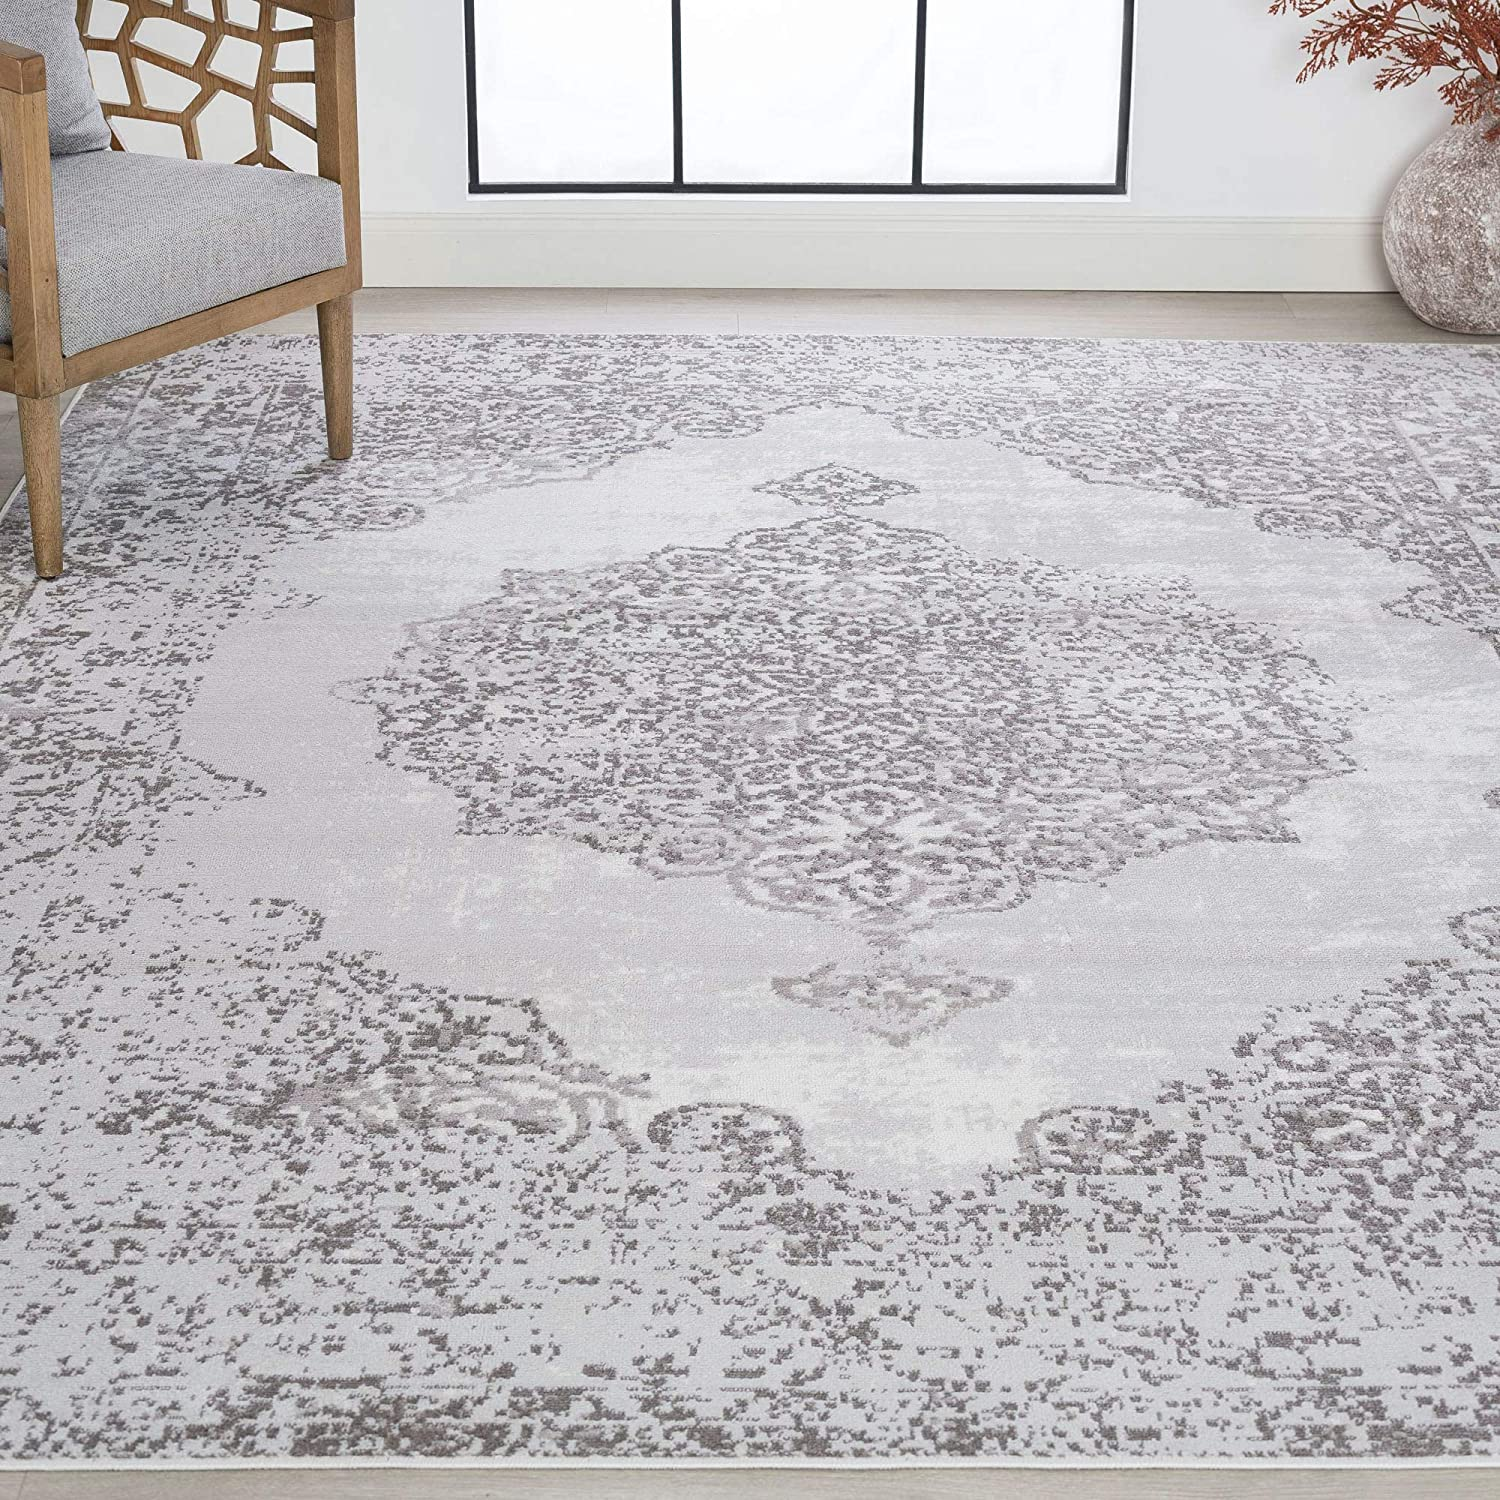 Lasonya White 4x6 Rectangle Area Rug Dorm Nu Sale Kids 35% OFF for Baby or